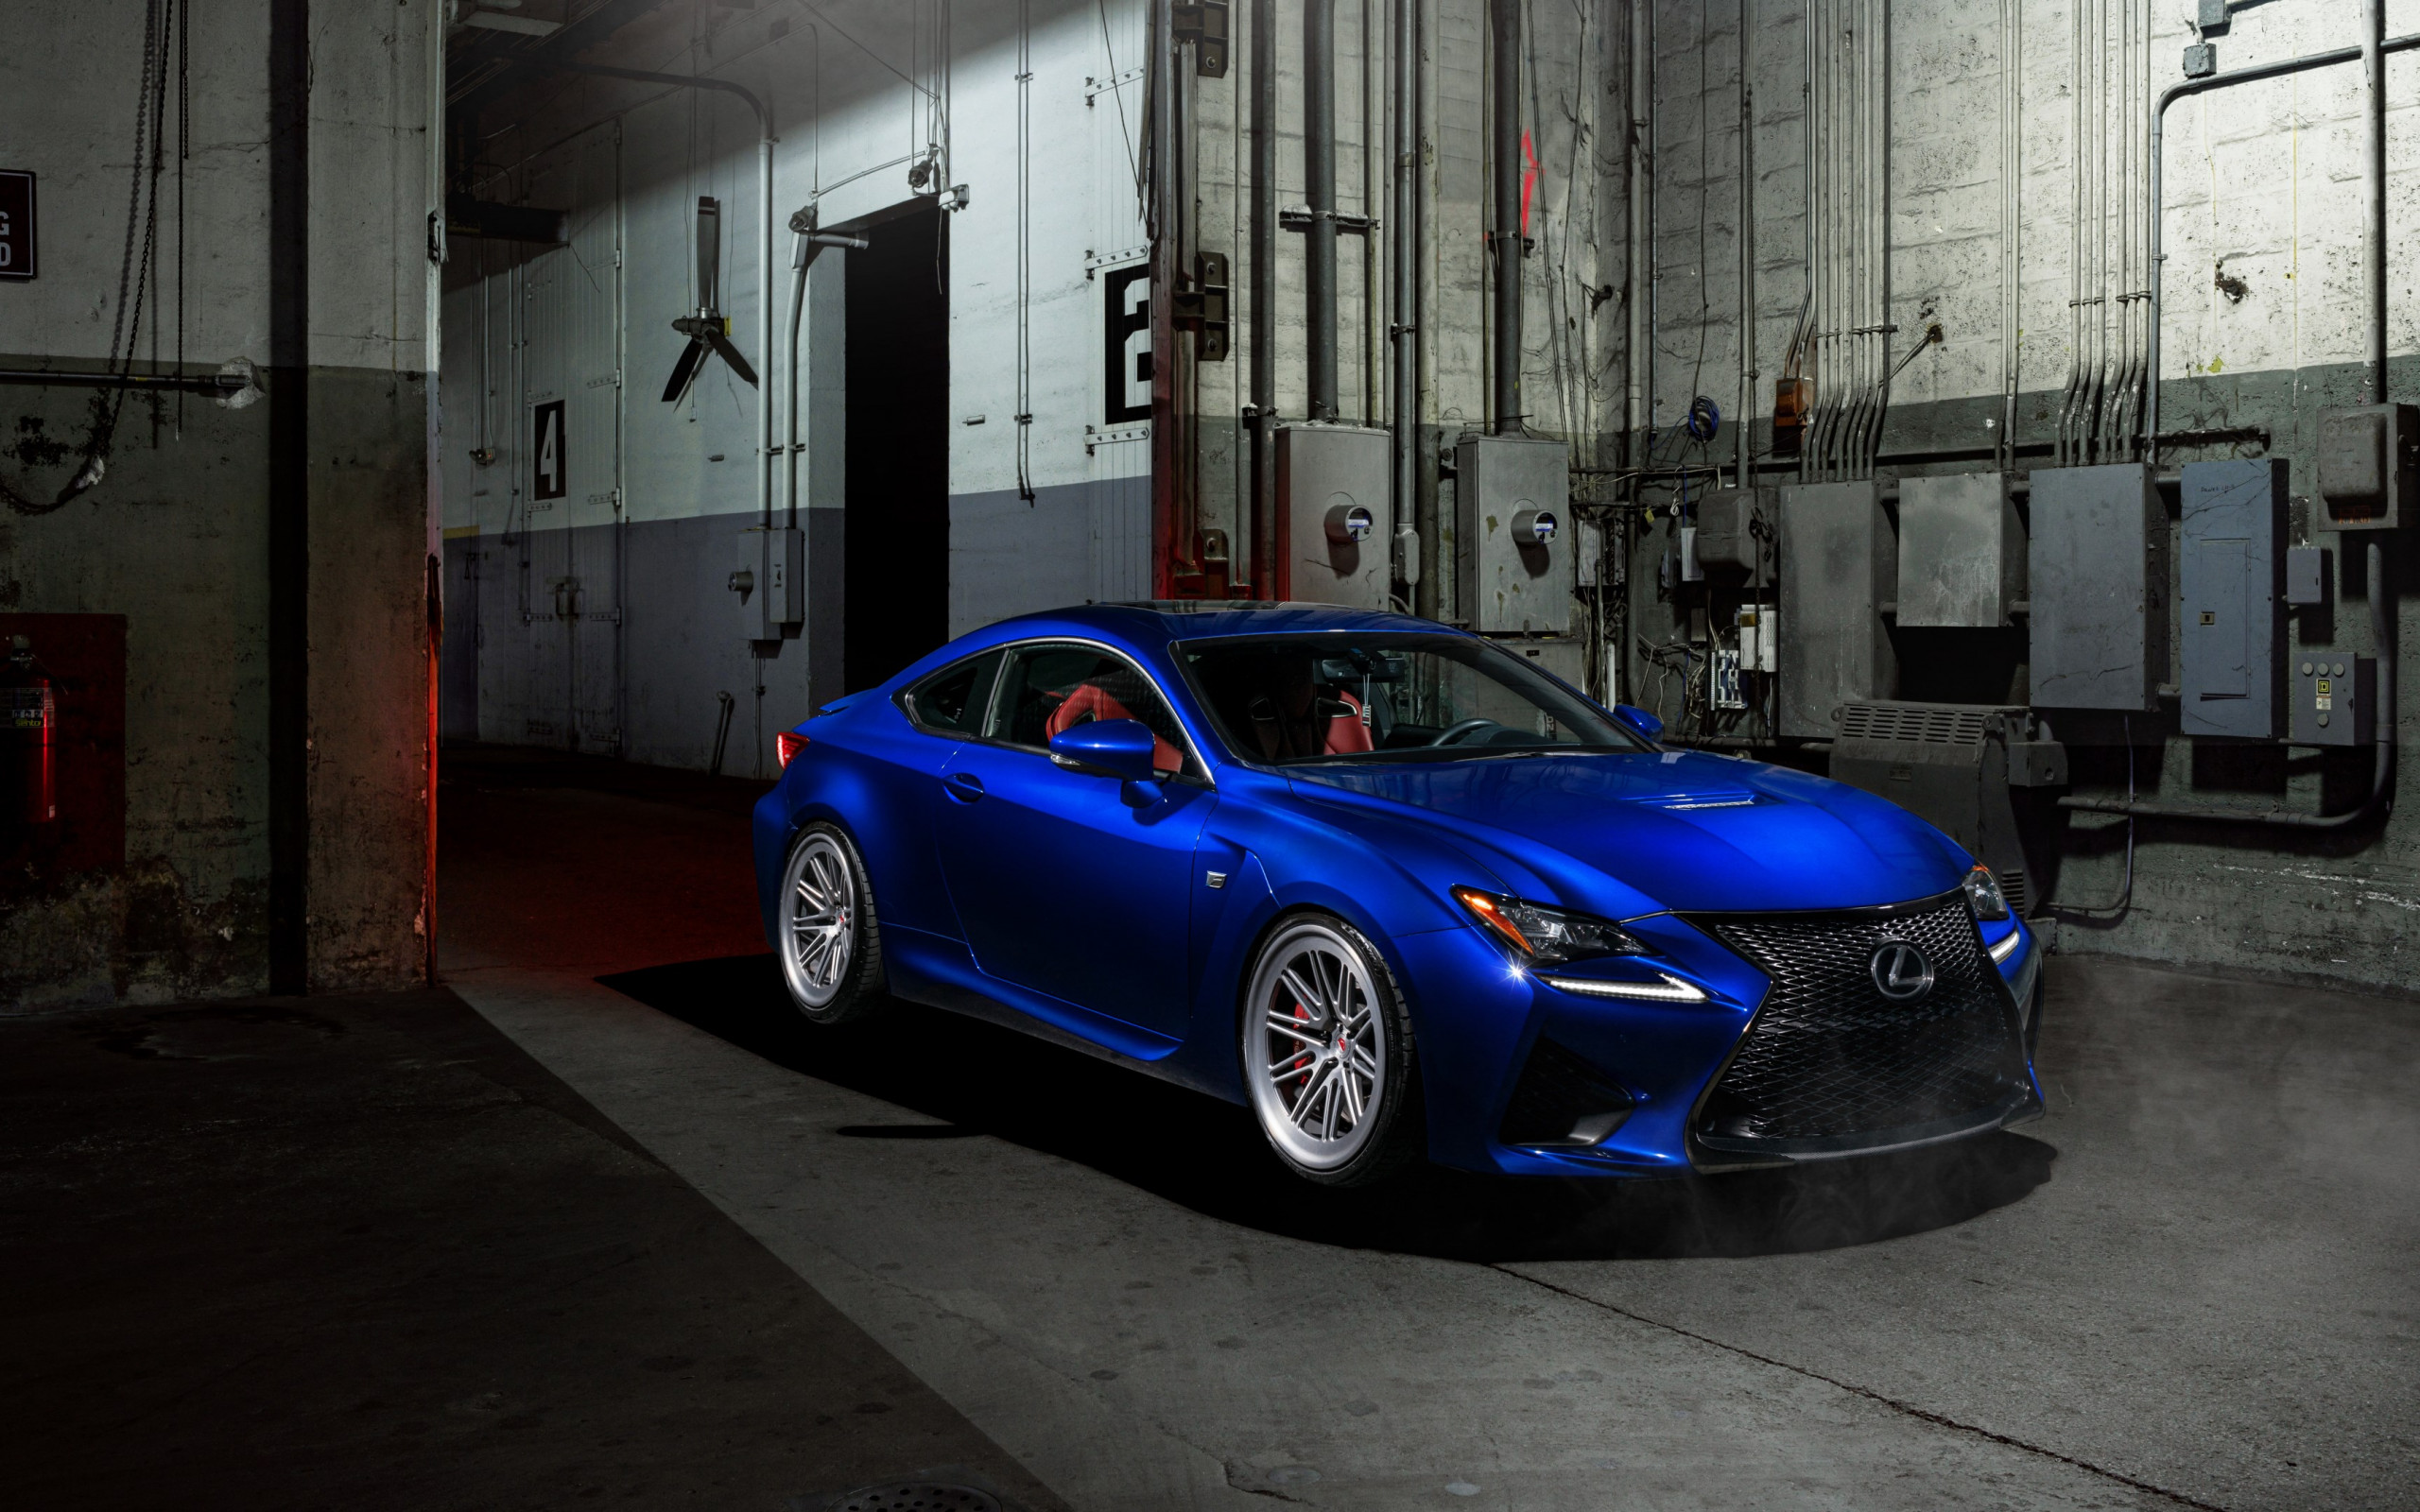 Blue Lexus RC F wallpaper 2560x1600